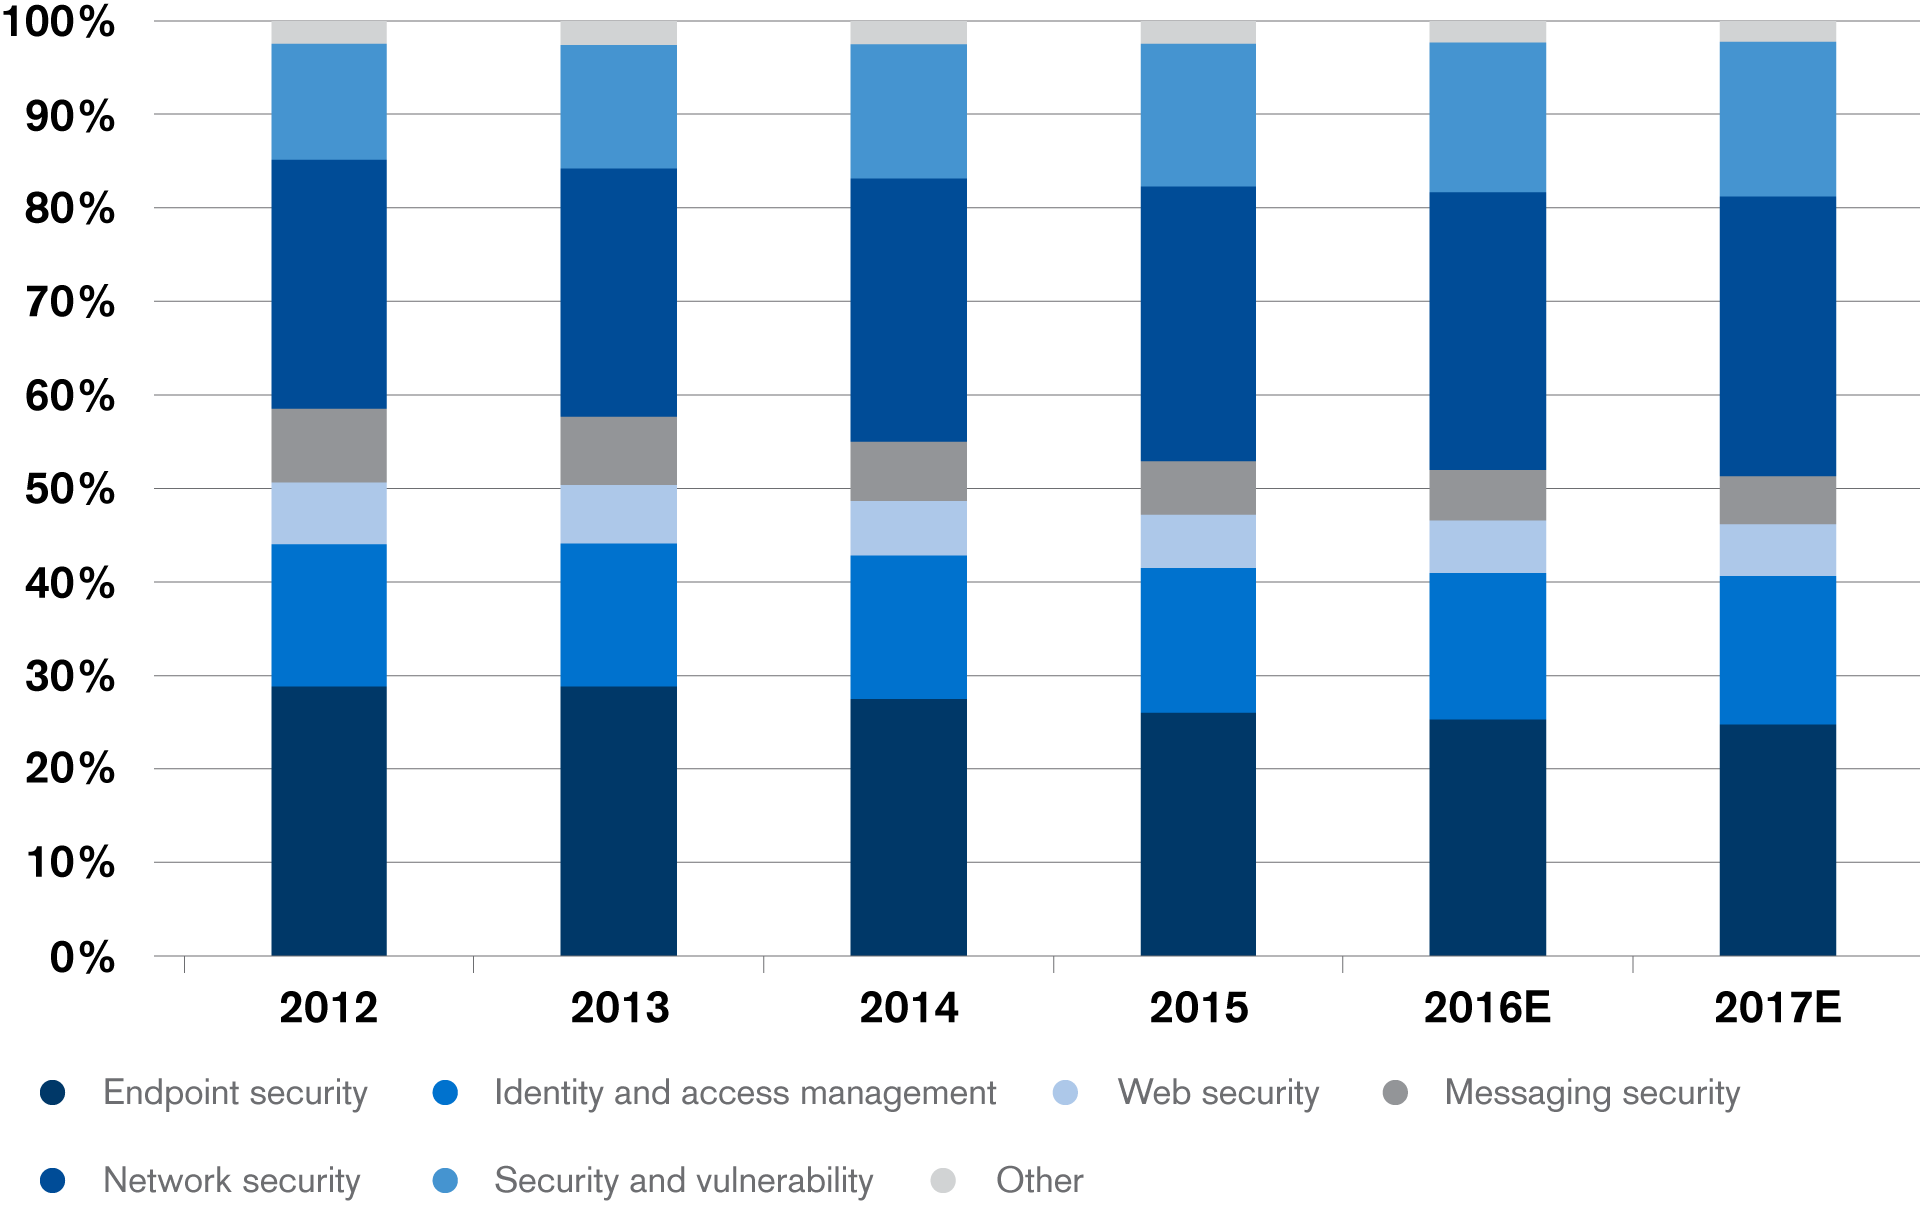 Network security consumes the lion's share of IT security spending (without Services)